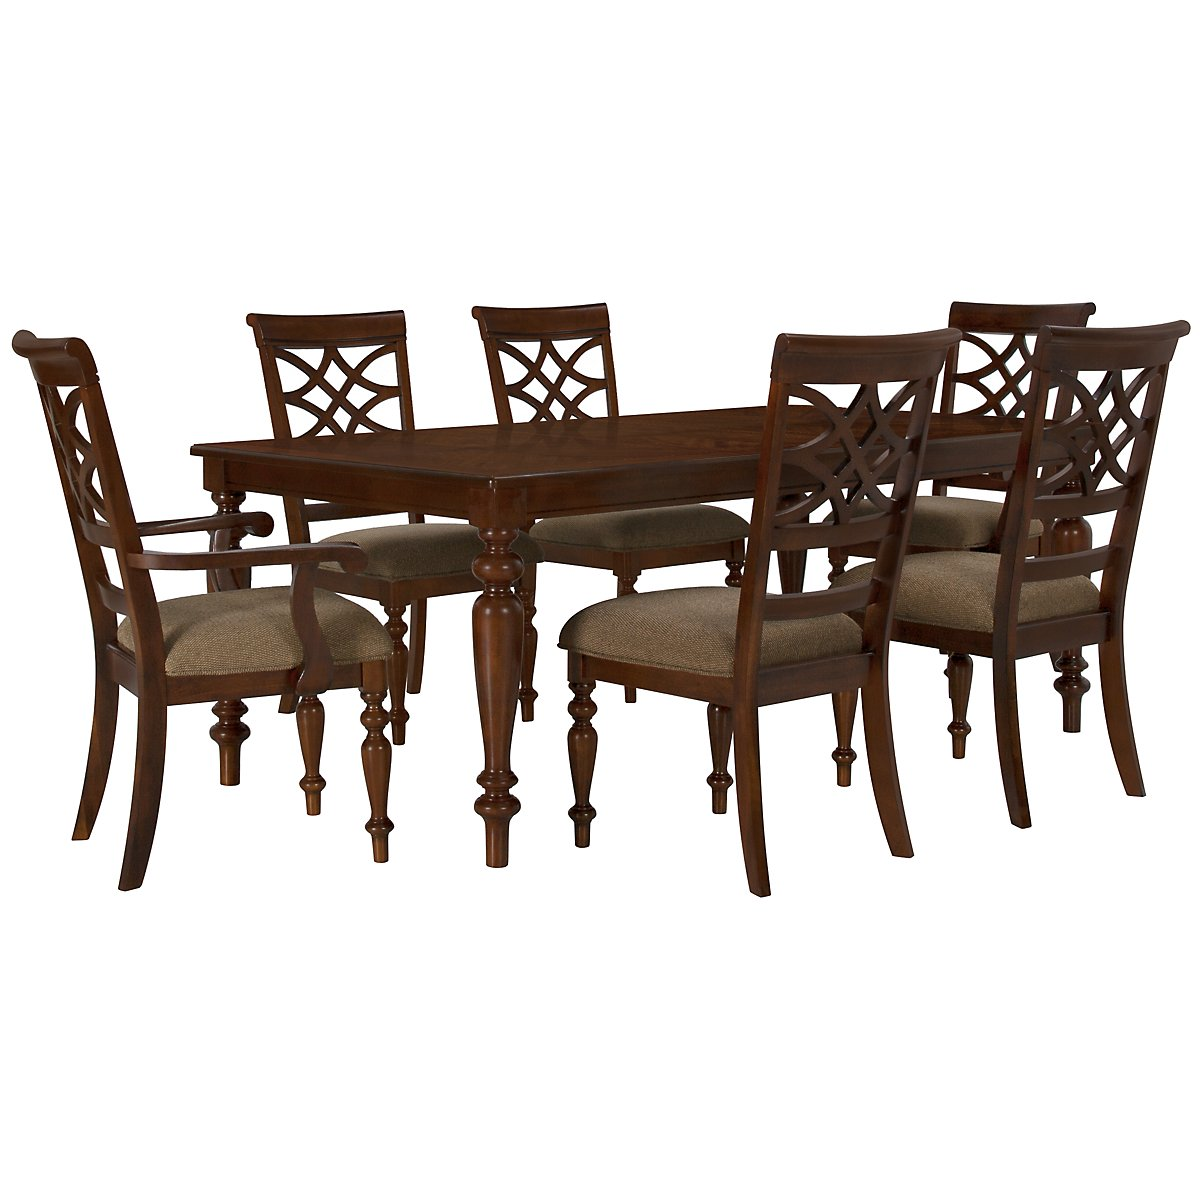 City Furniture Oxford Mid Tone Rectangular Table Chairs - Rectangle table with 4 chairs